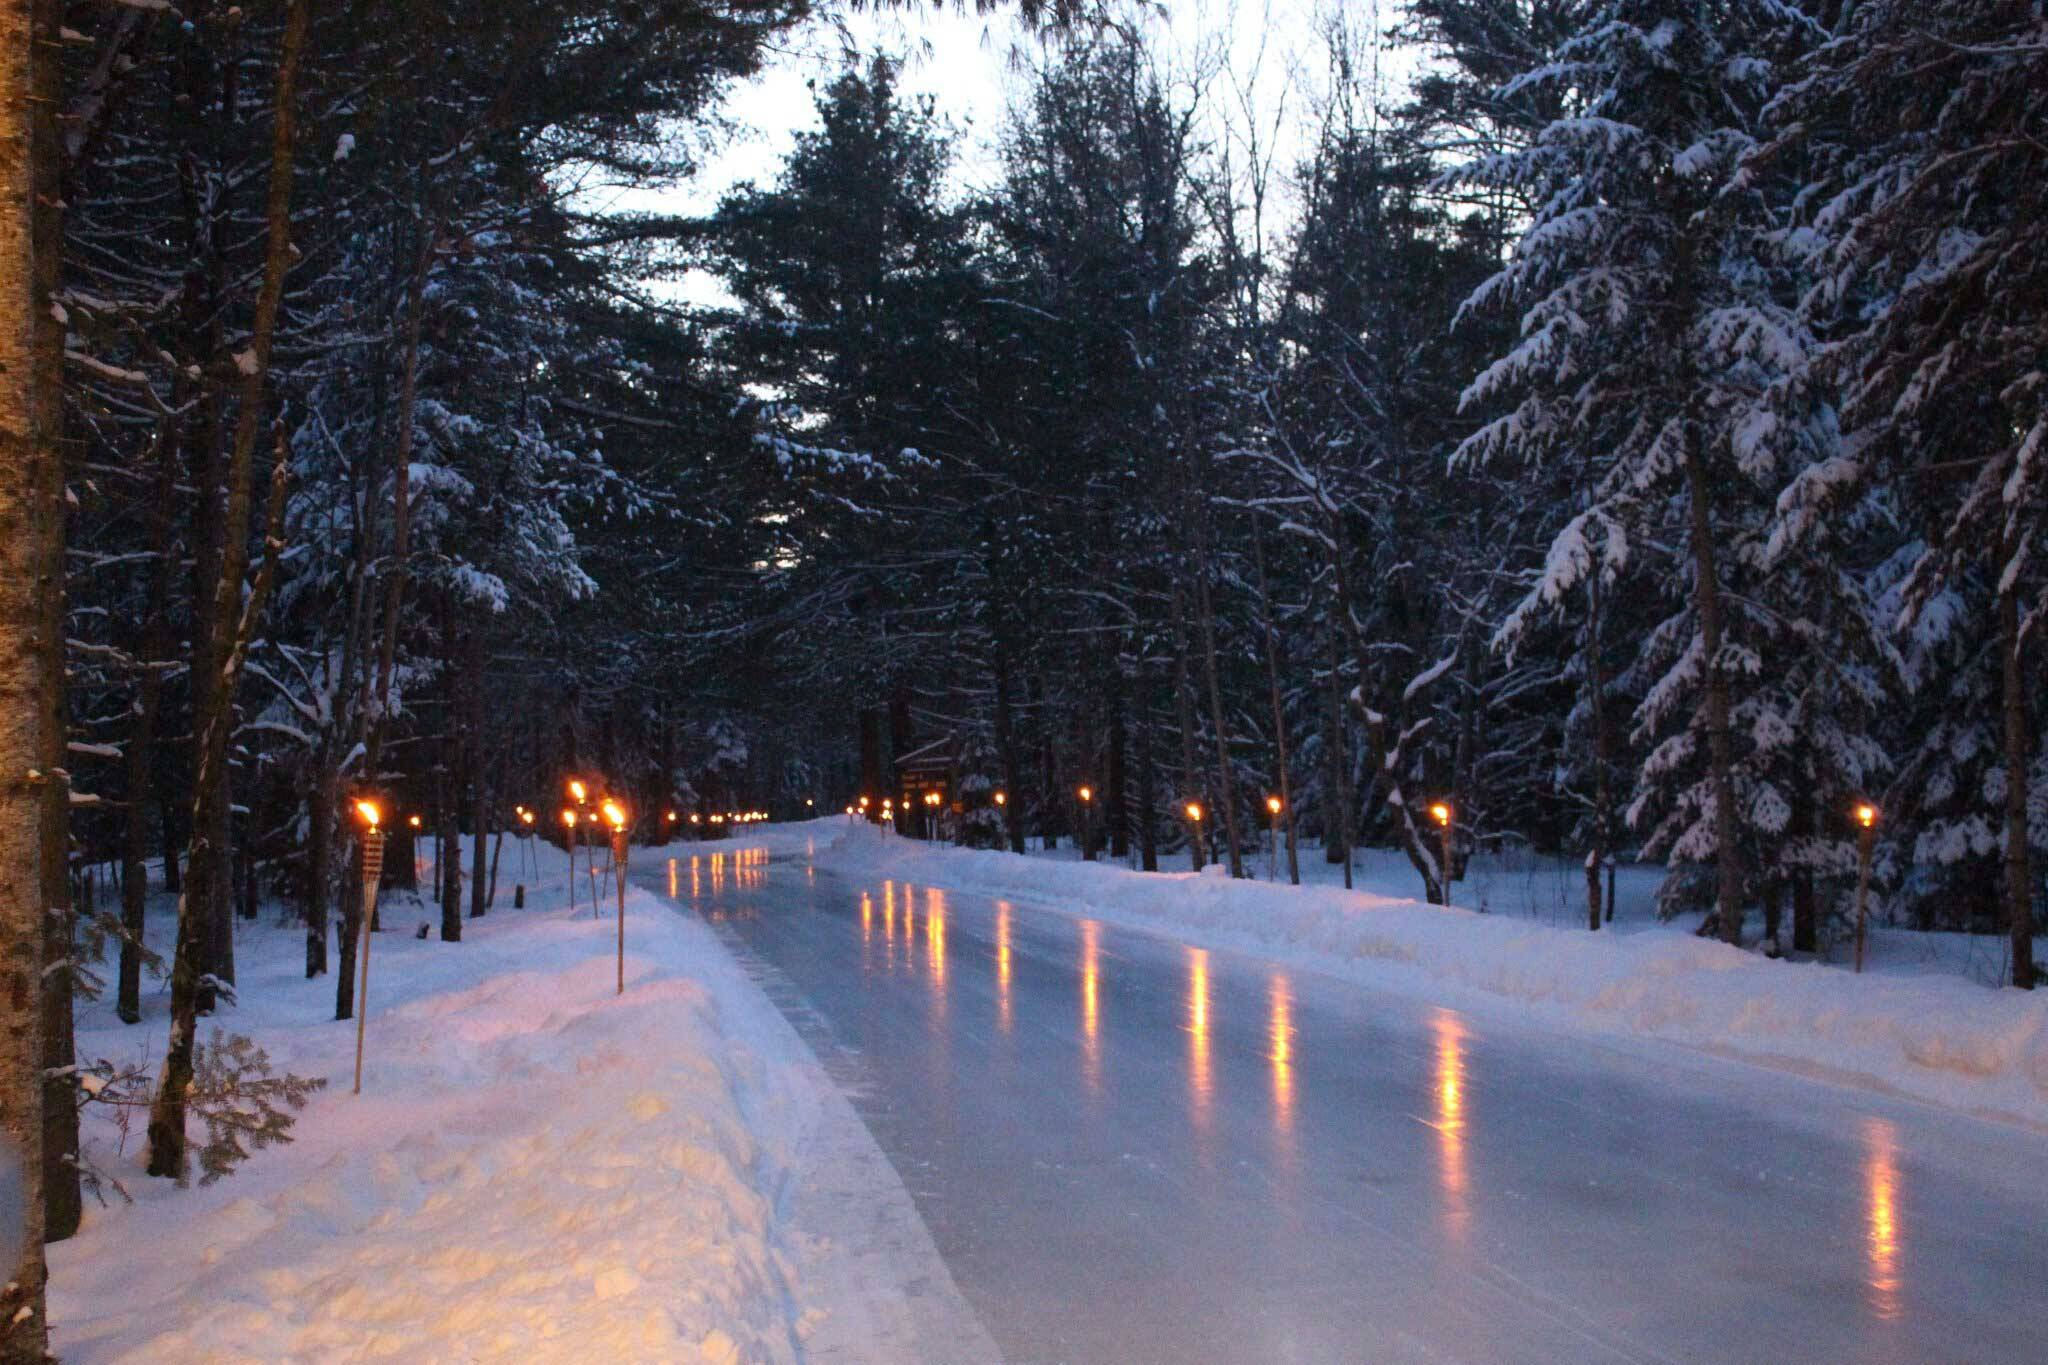 arrowhead skating trail